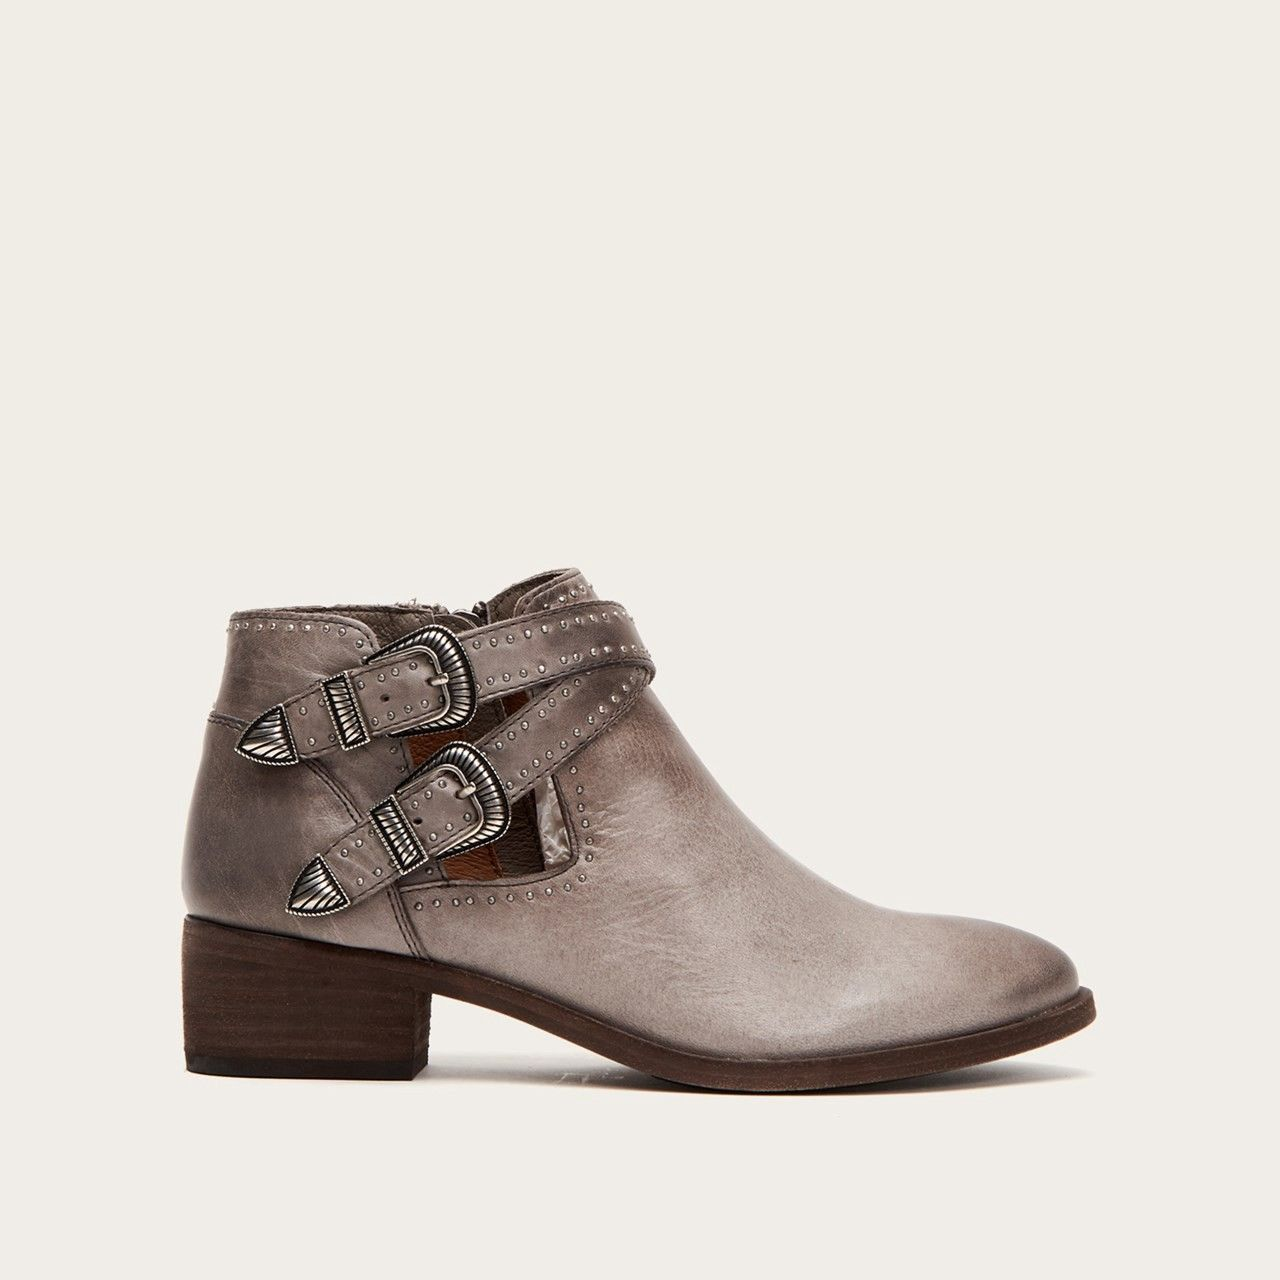 c57f2ceb1d1 Frye Ray Deco Western Shootie - Grey 5.5 Silver | Products | Boots ...